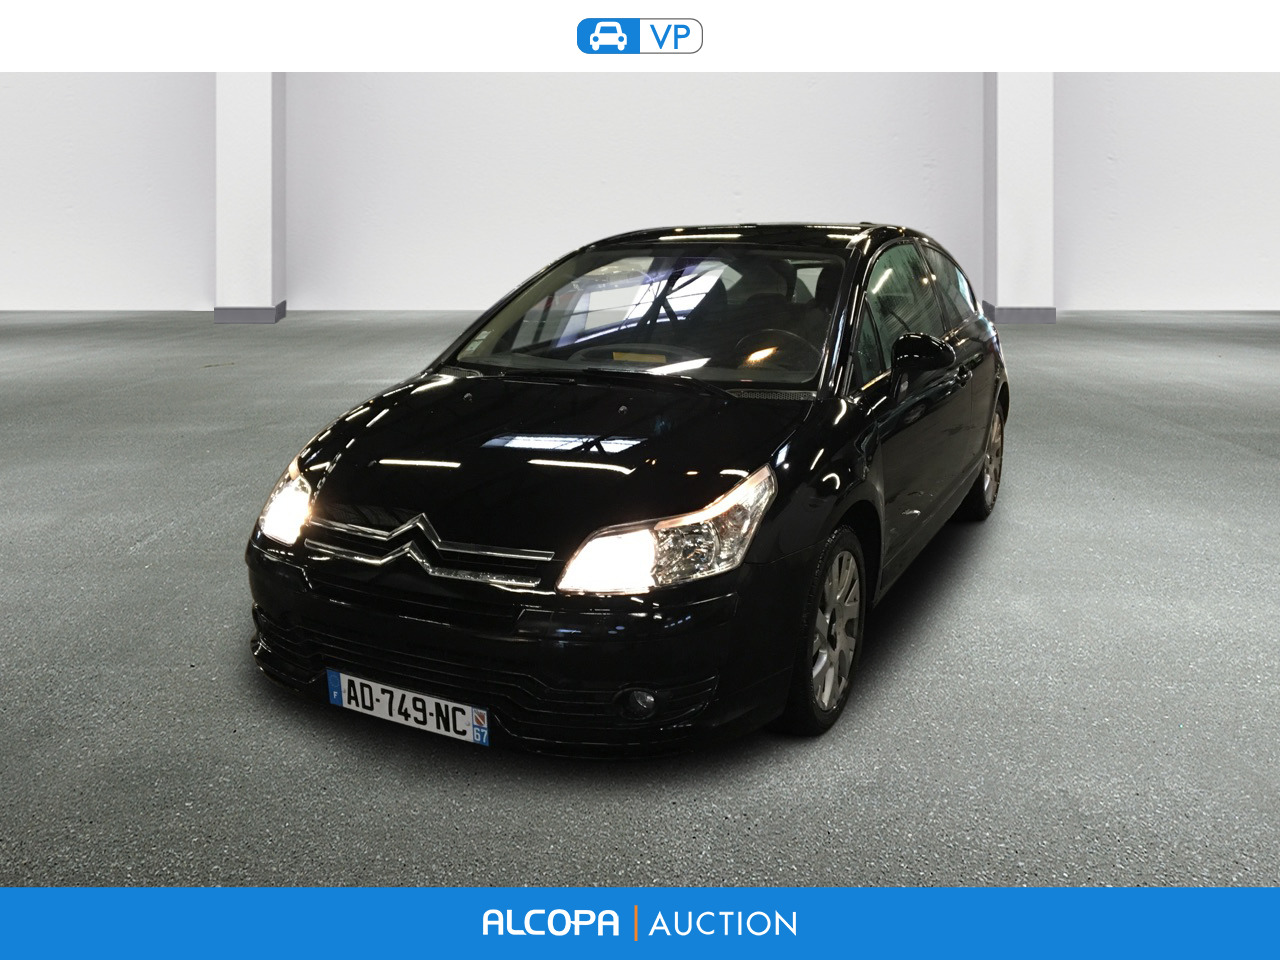 citroen c4 c4 coupe 1 6 hdi110 vts alcopa auction. Black Bedroom Furniture Sets. Home Design Ideas